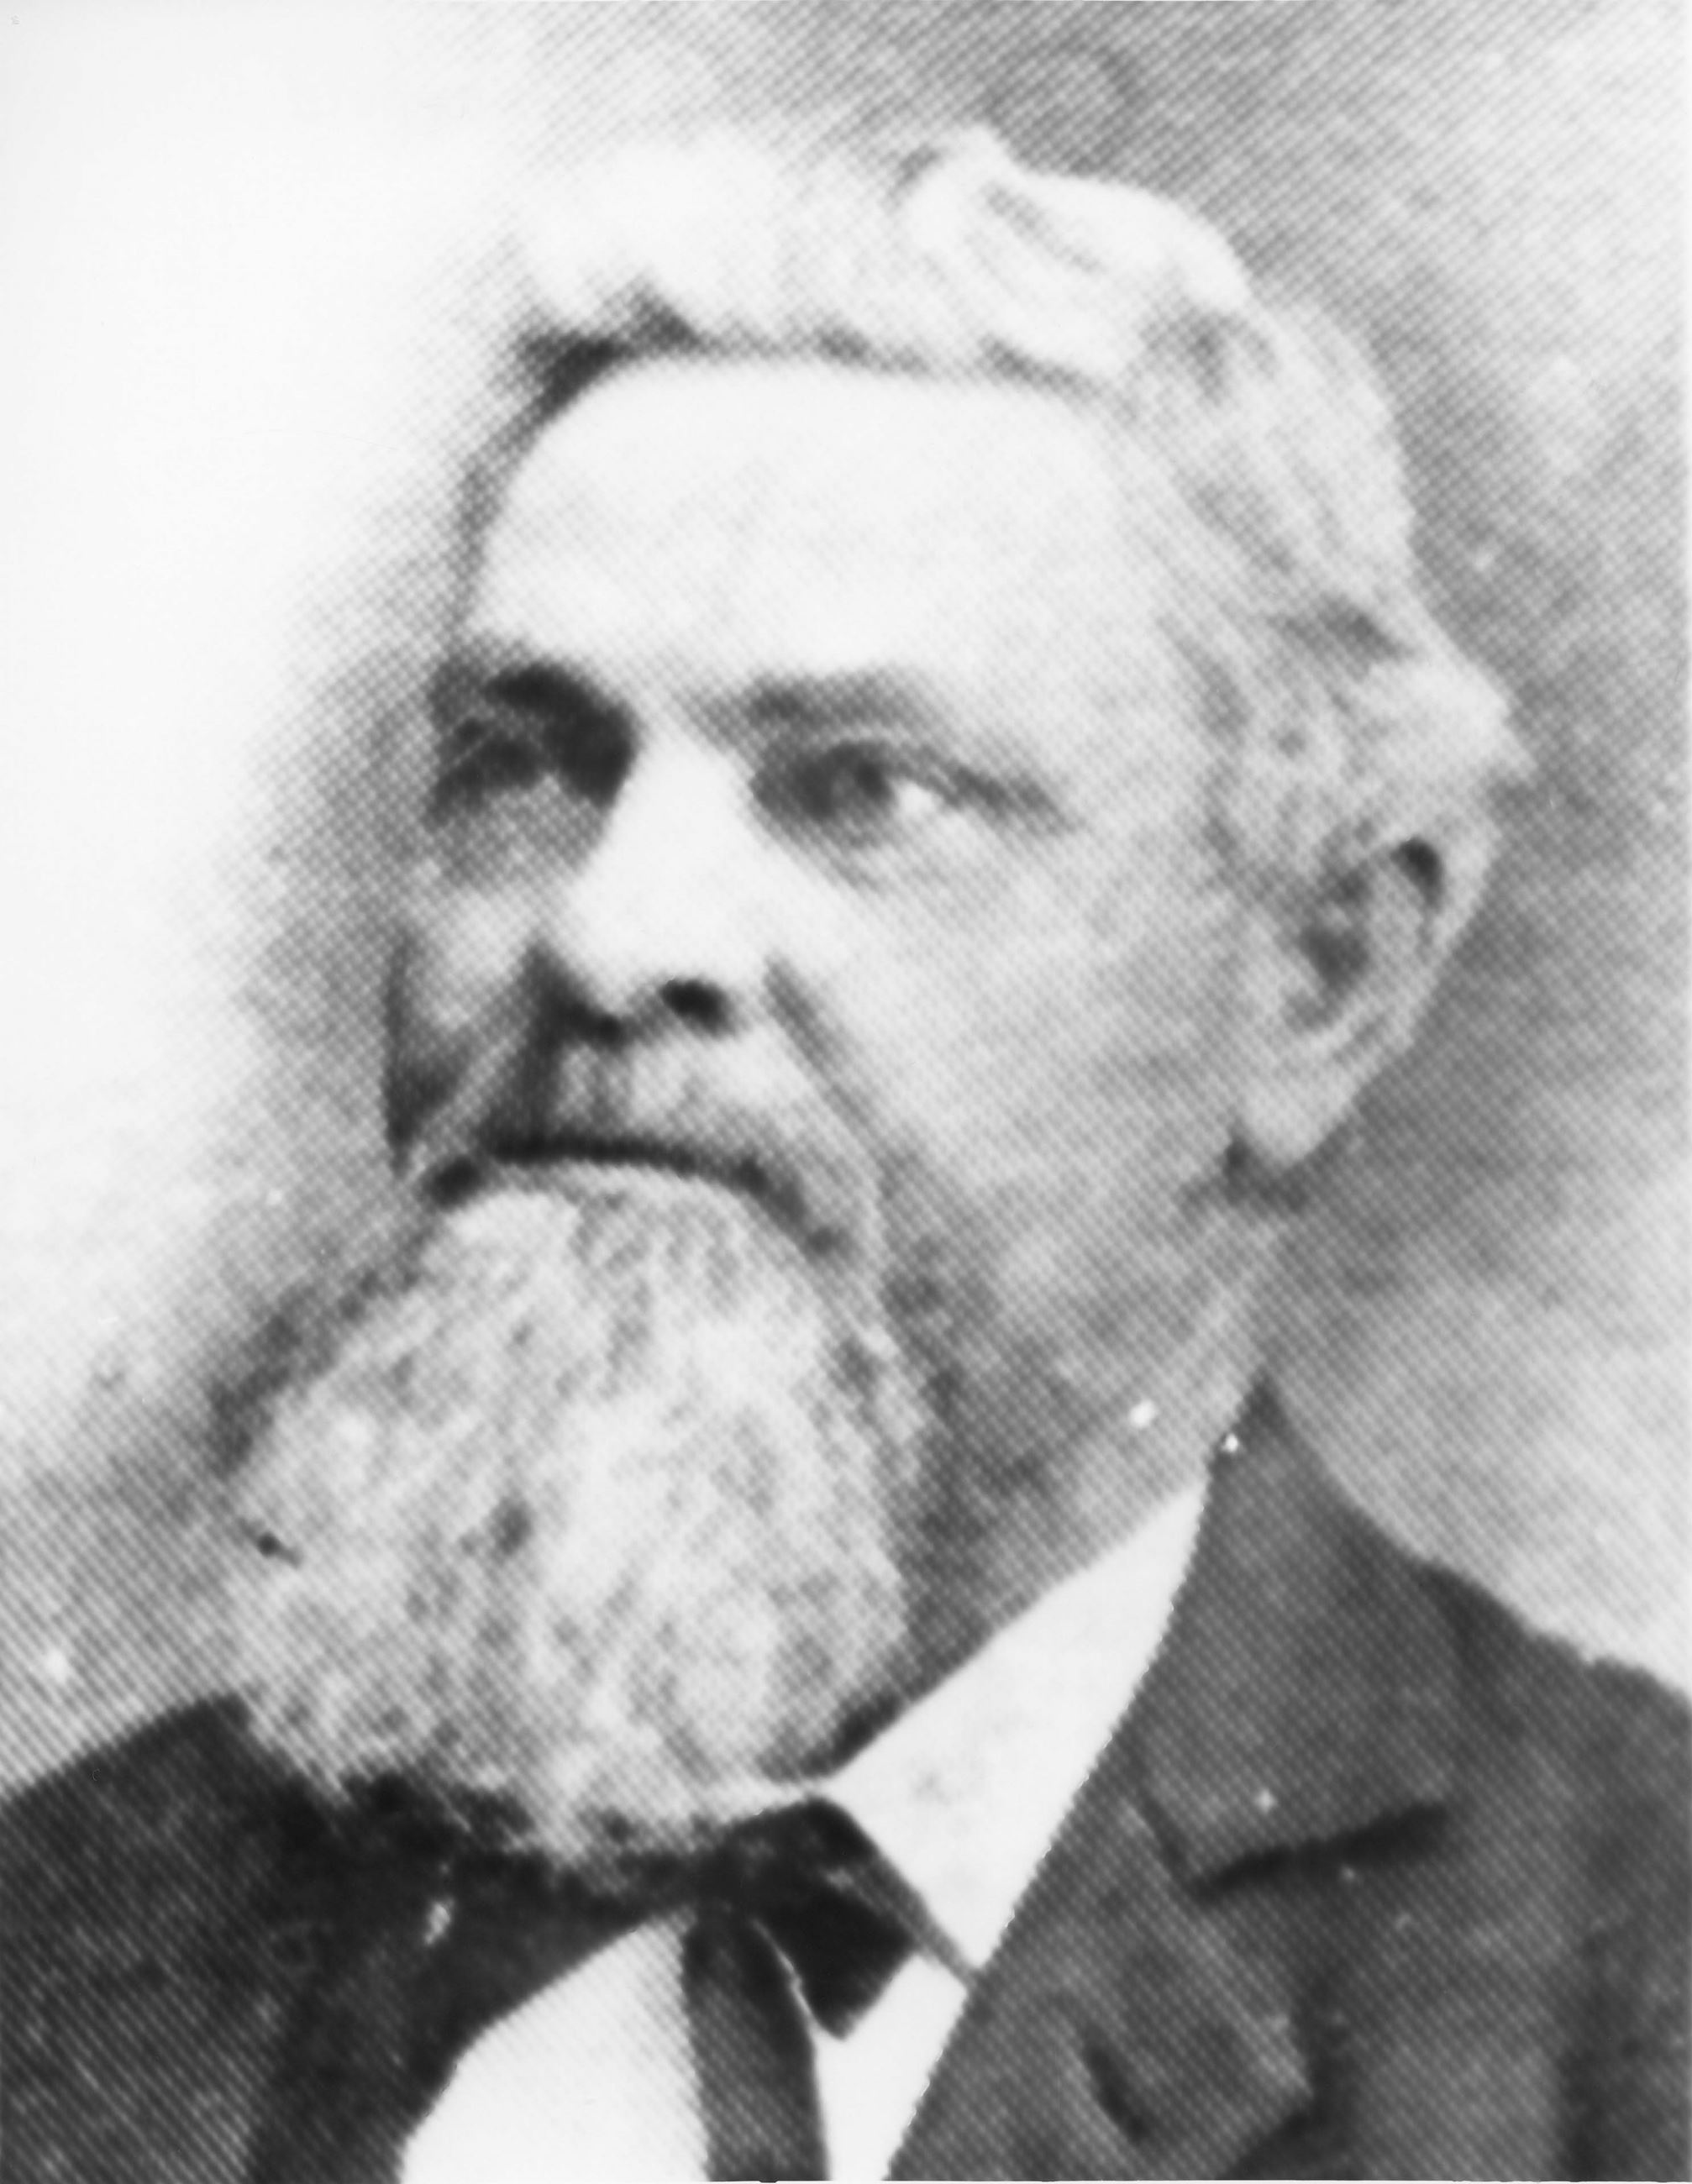 10. Sheriff Charles Warfield 1888-01